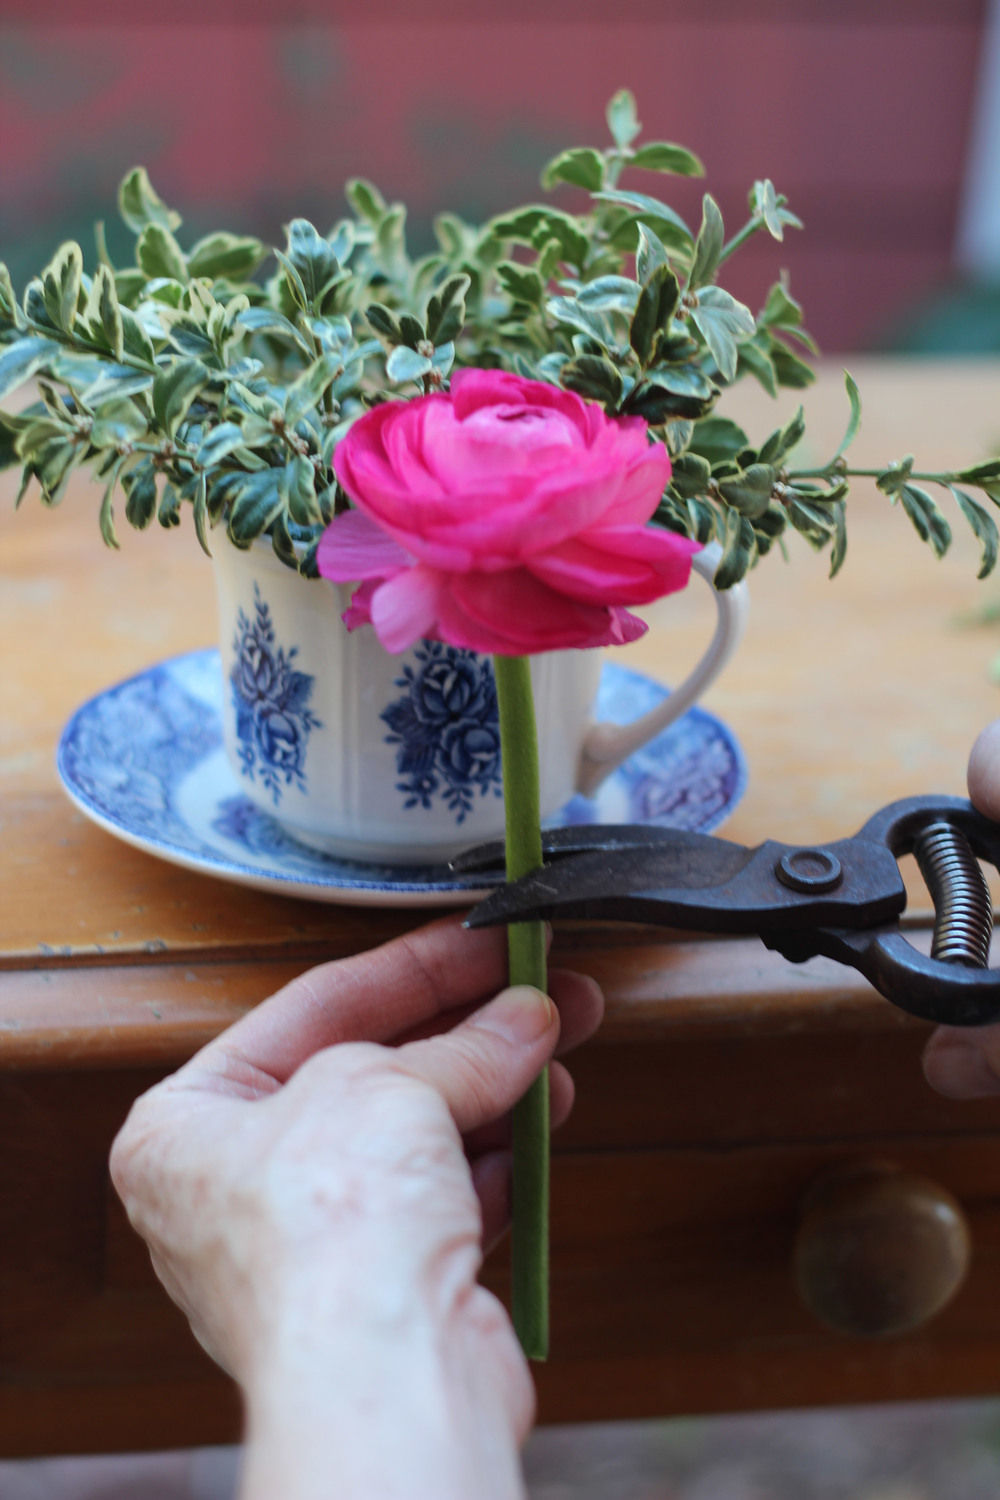 Hold the ranunculus in front of the cup to measure.